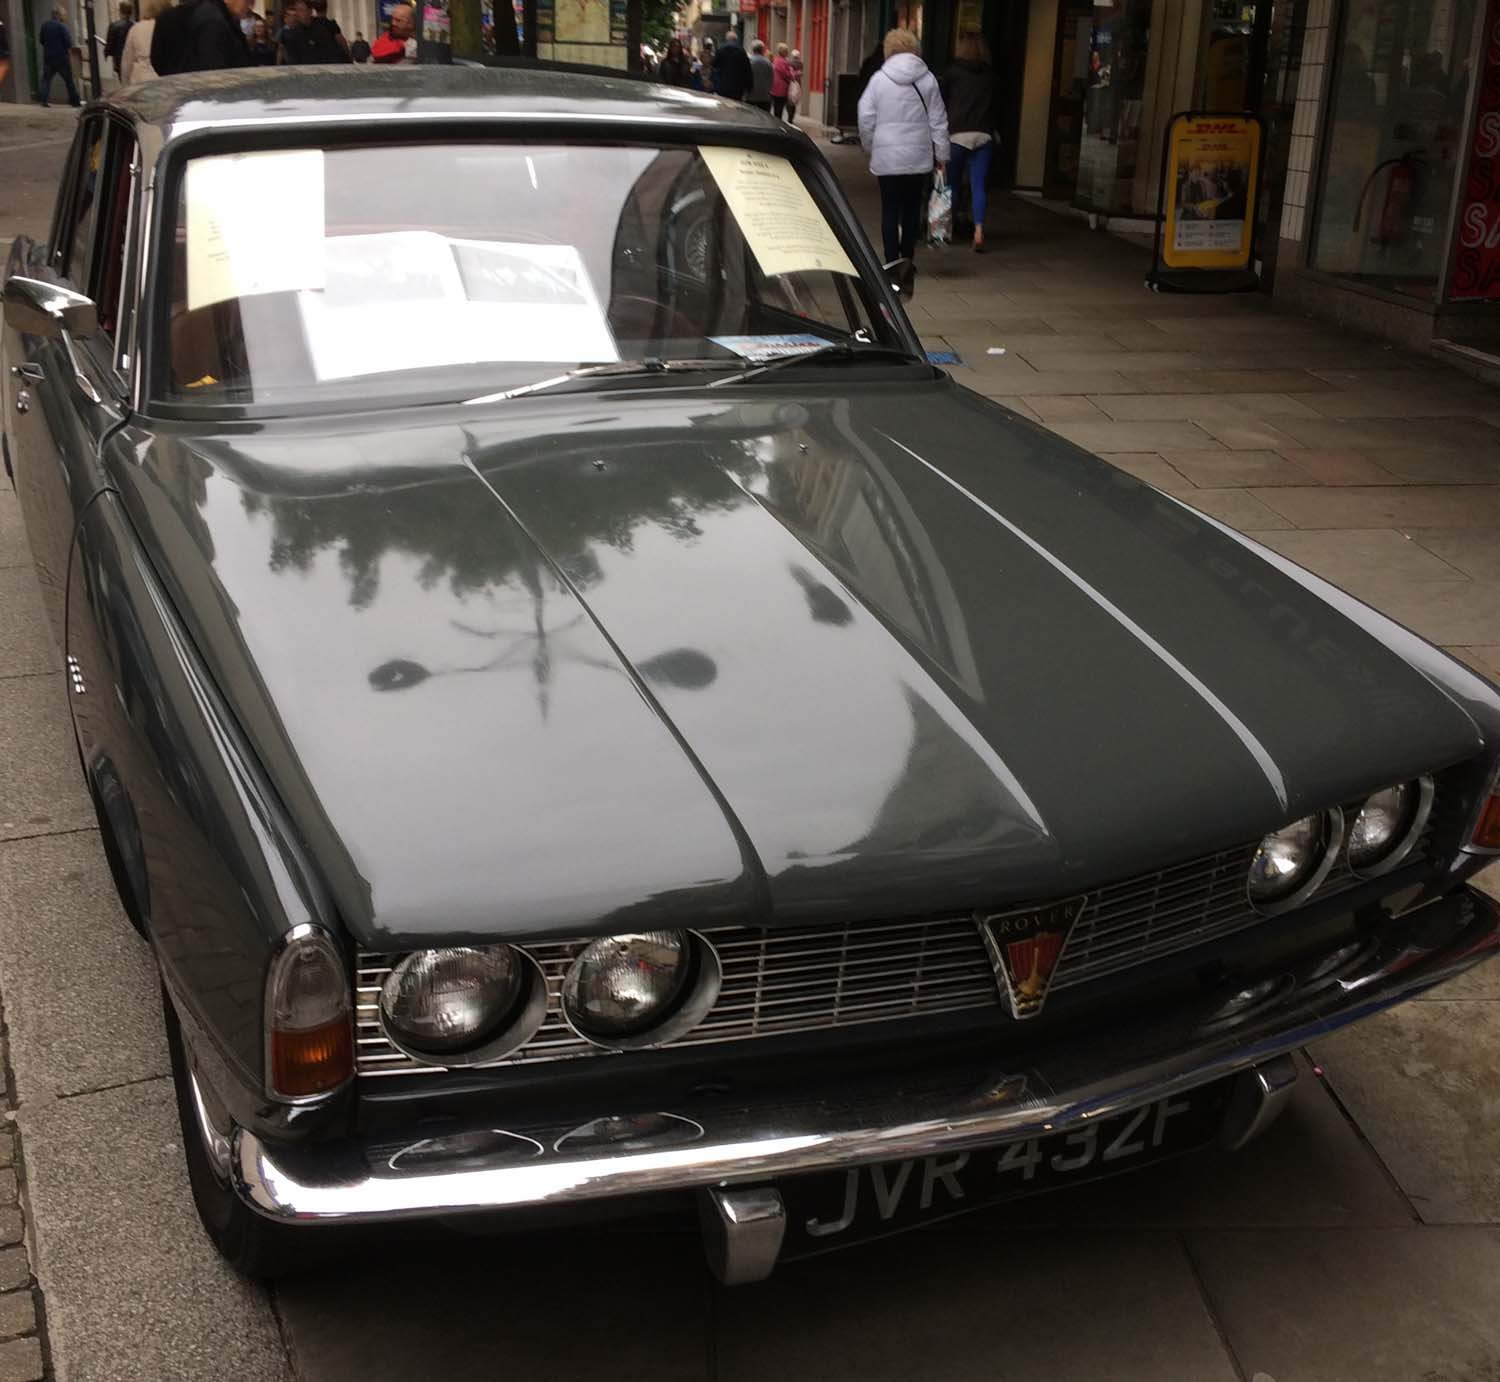 The classic Rover driven by actor Martin Shaw in the Inspector George Gently TV series takes pride of place in the Newport Festival of Classics display